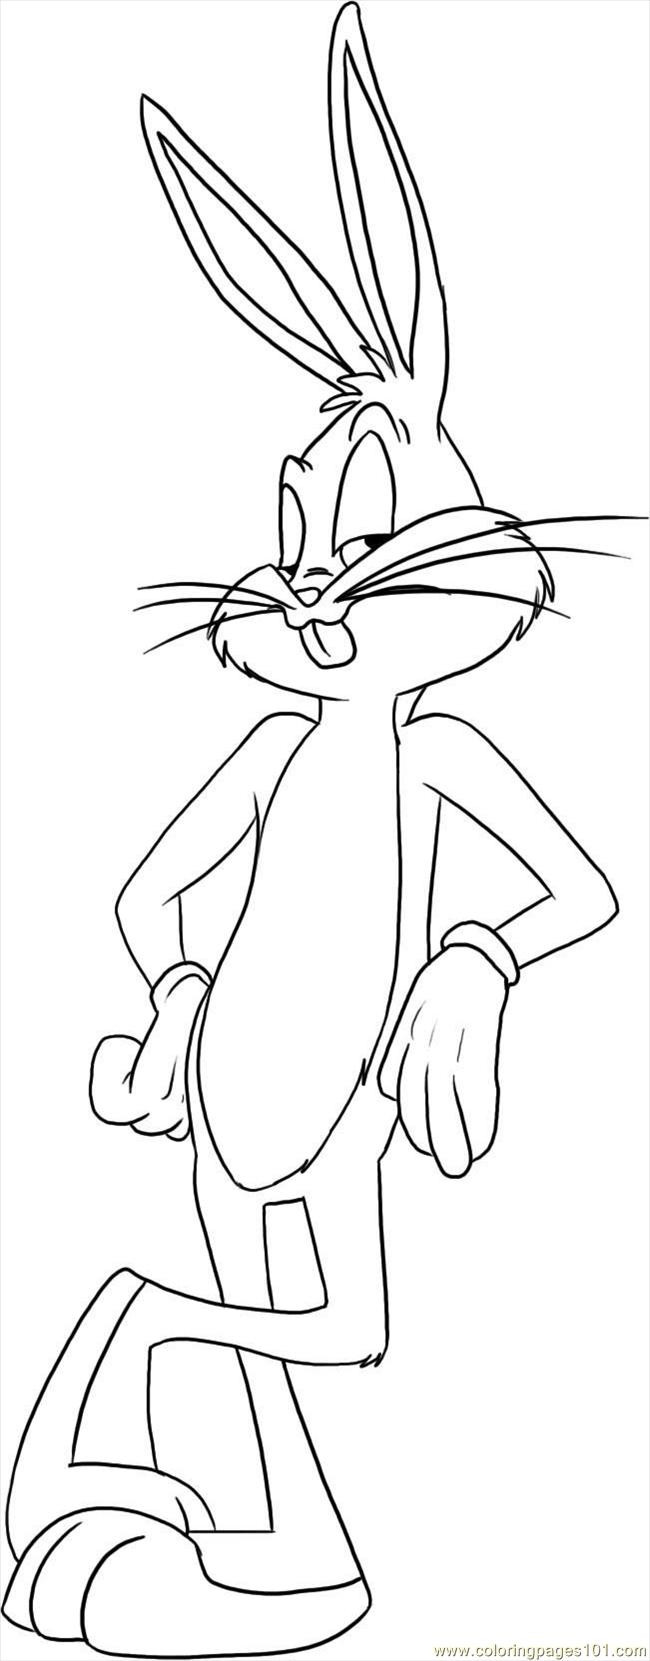 Free Coloring Pages Bugs Bunny  bugs bunny printable coloring pages